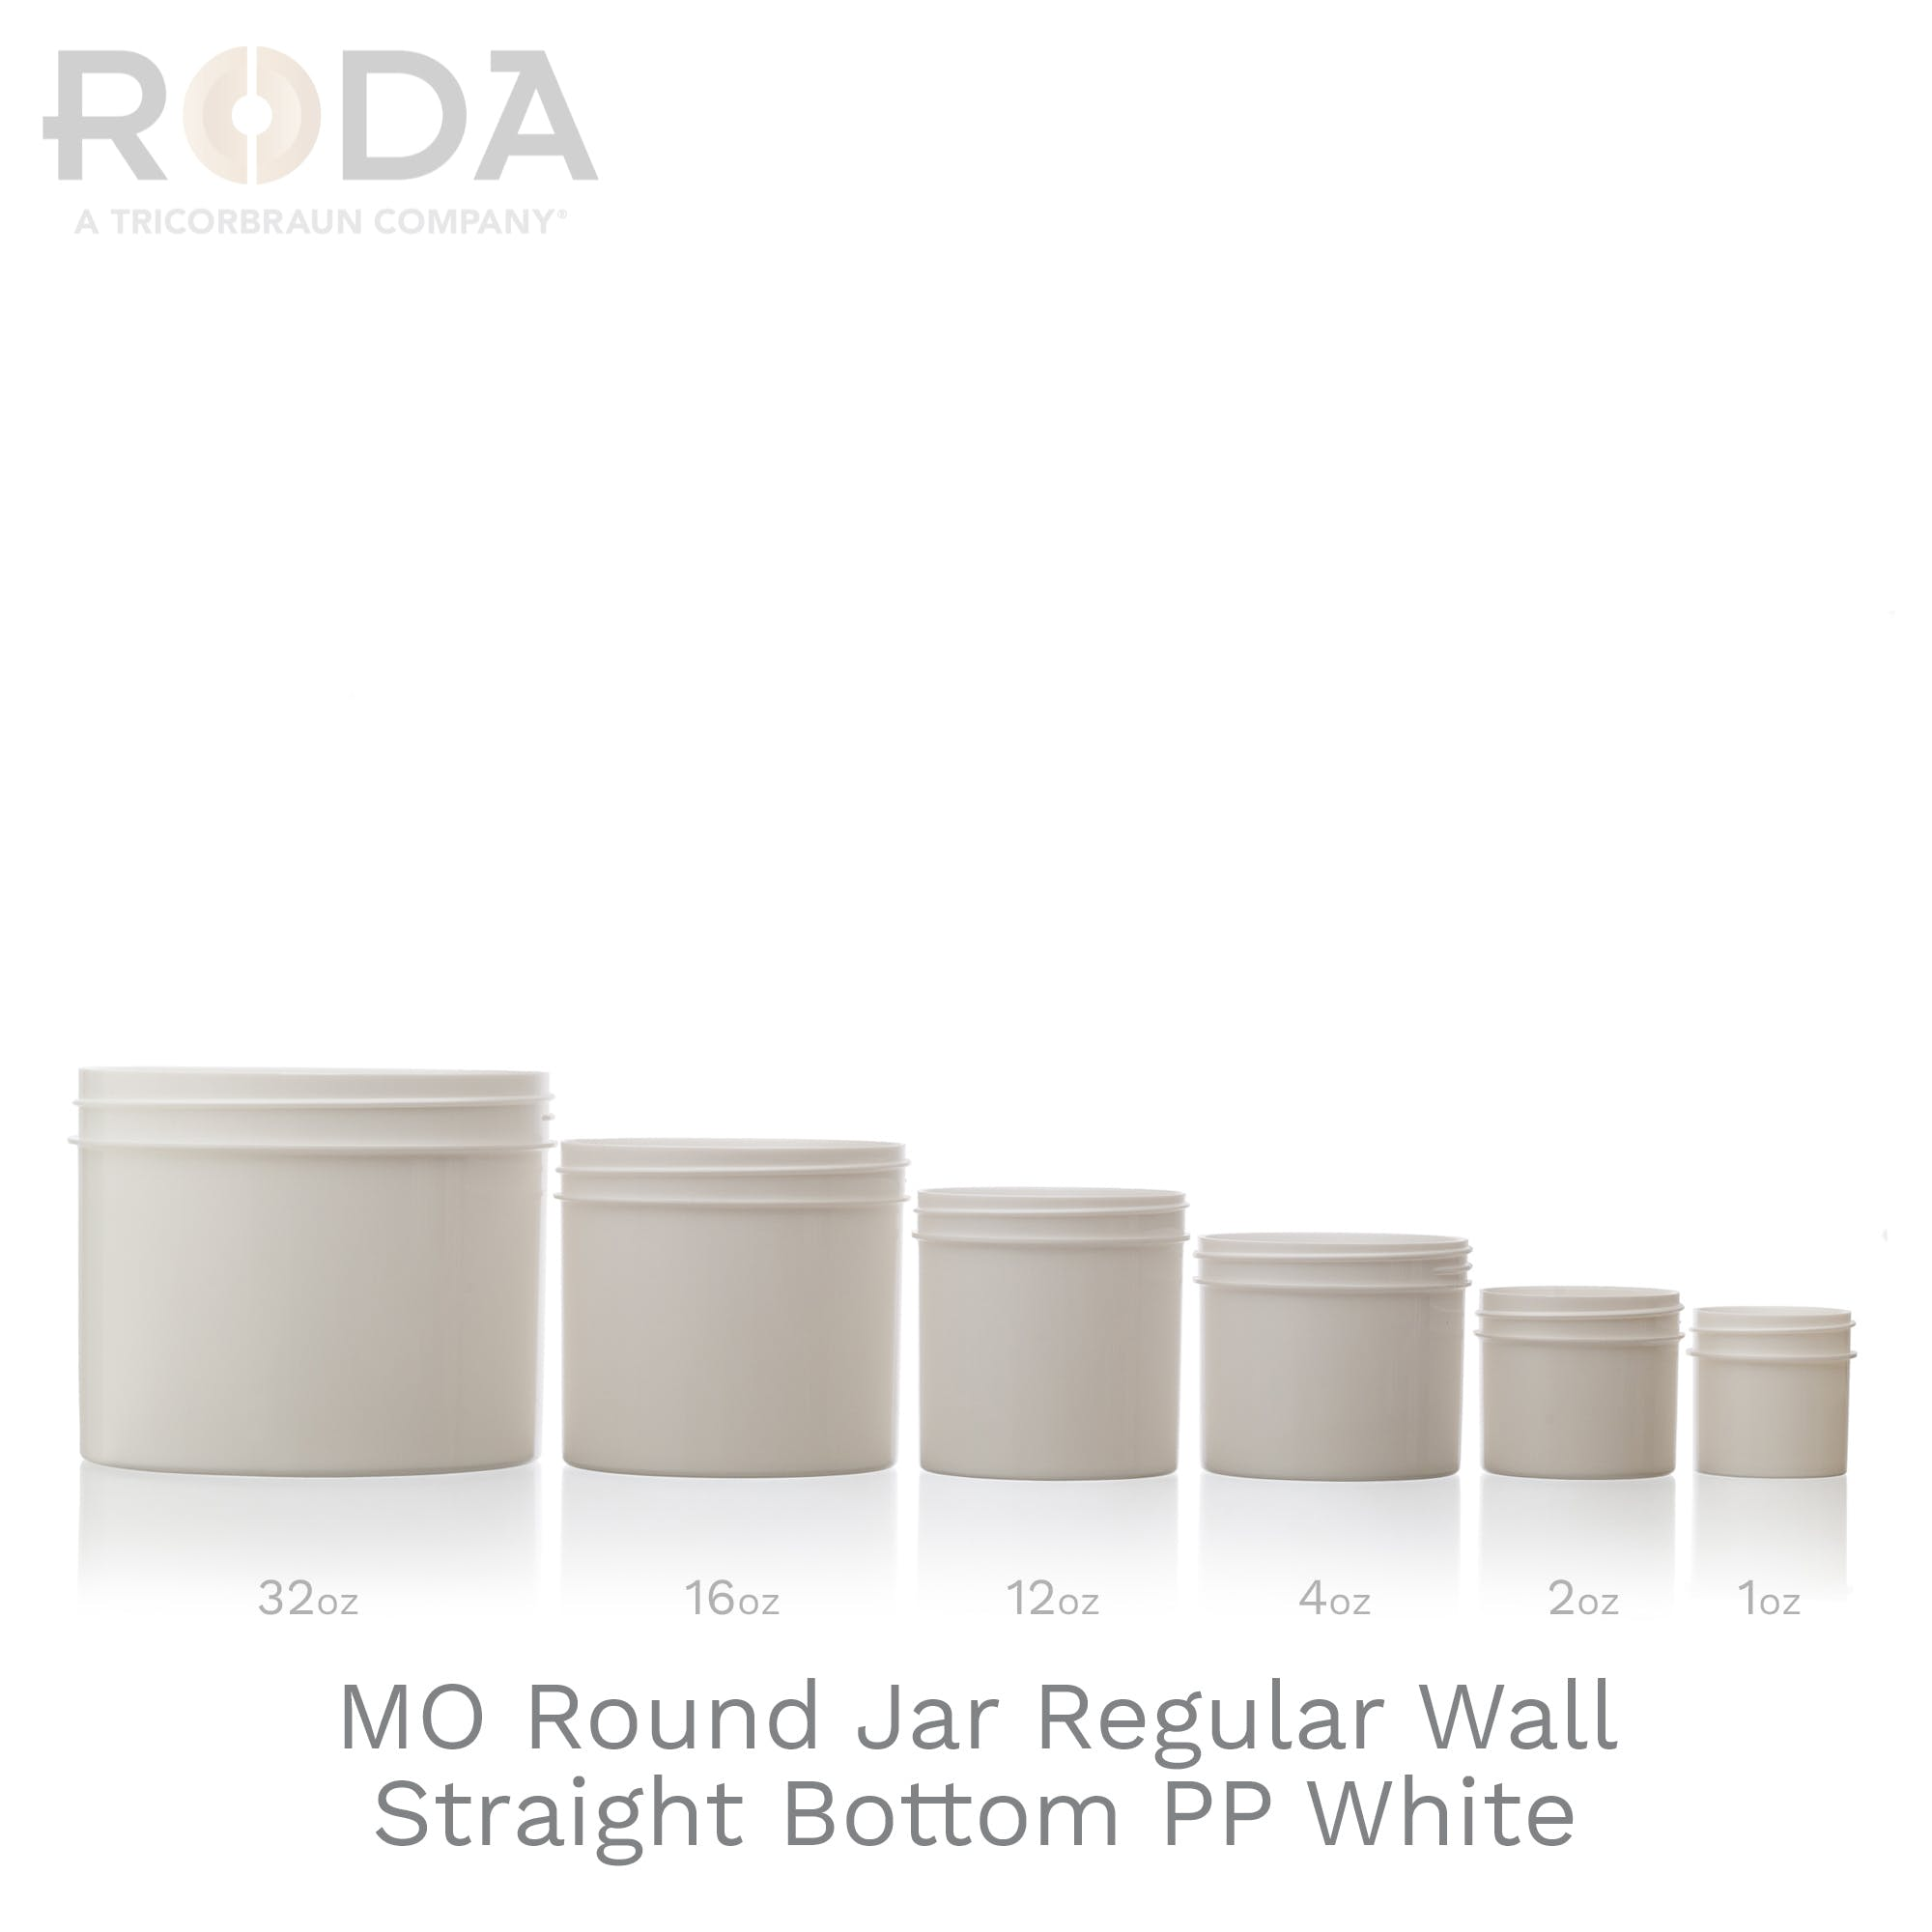 MO Round Jar Regular Wall Straight Bottom PP White